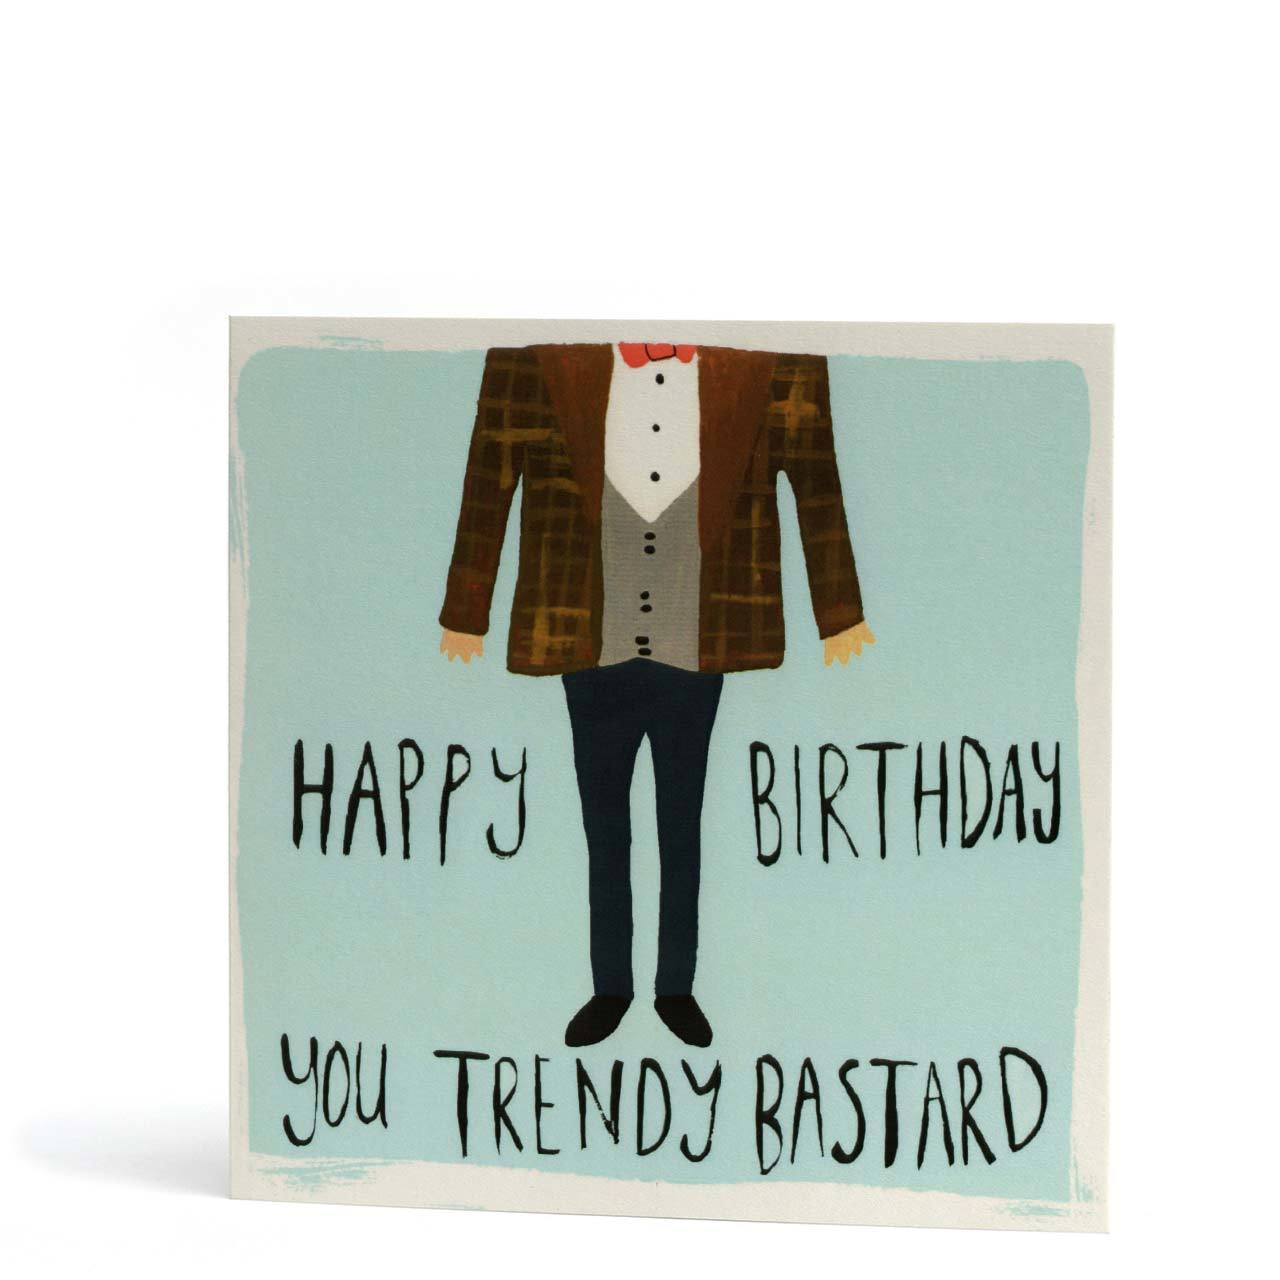 Trendy Bastard Birthday Greeting Card